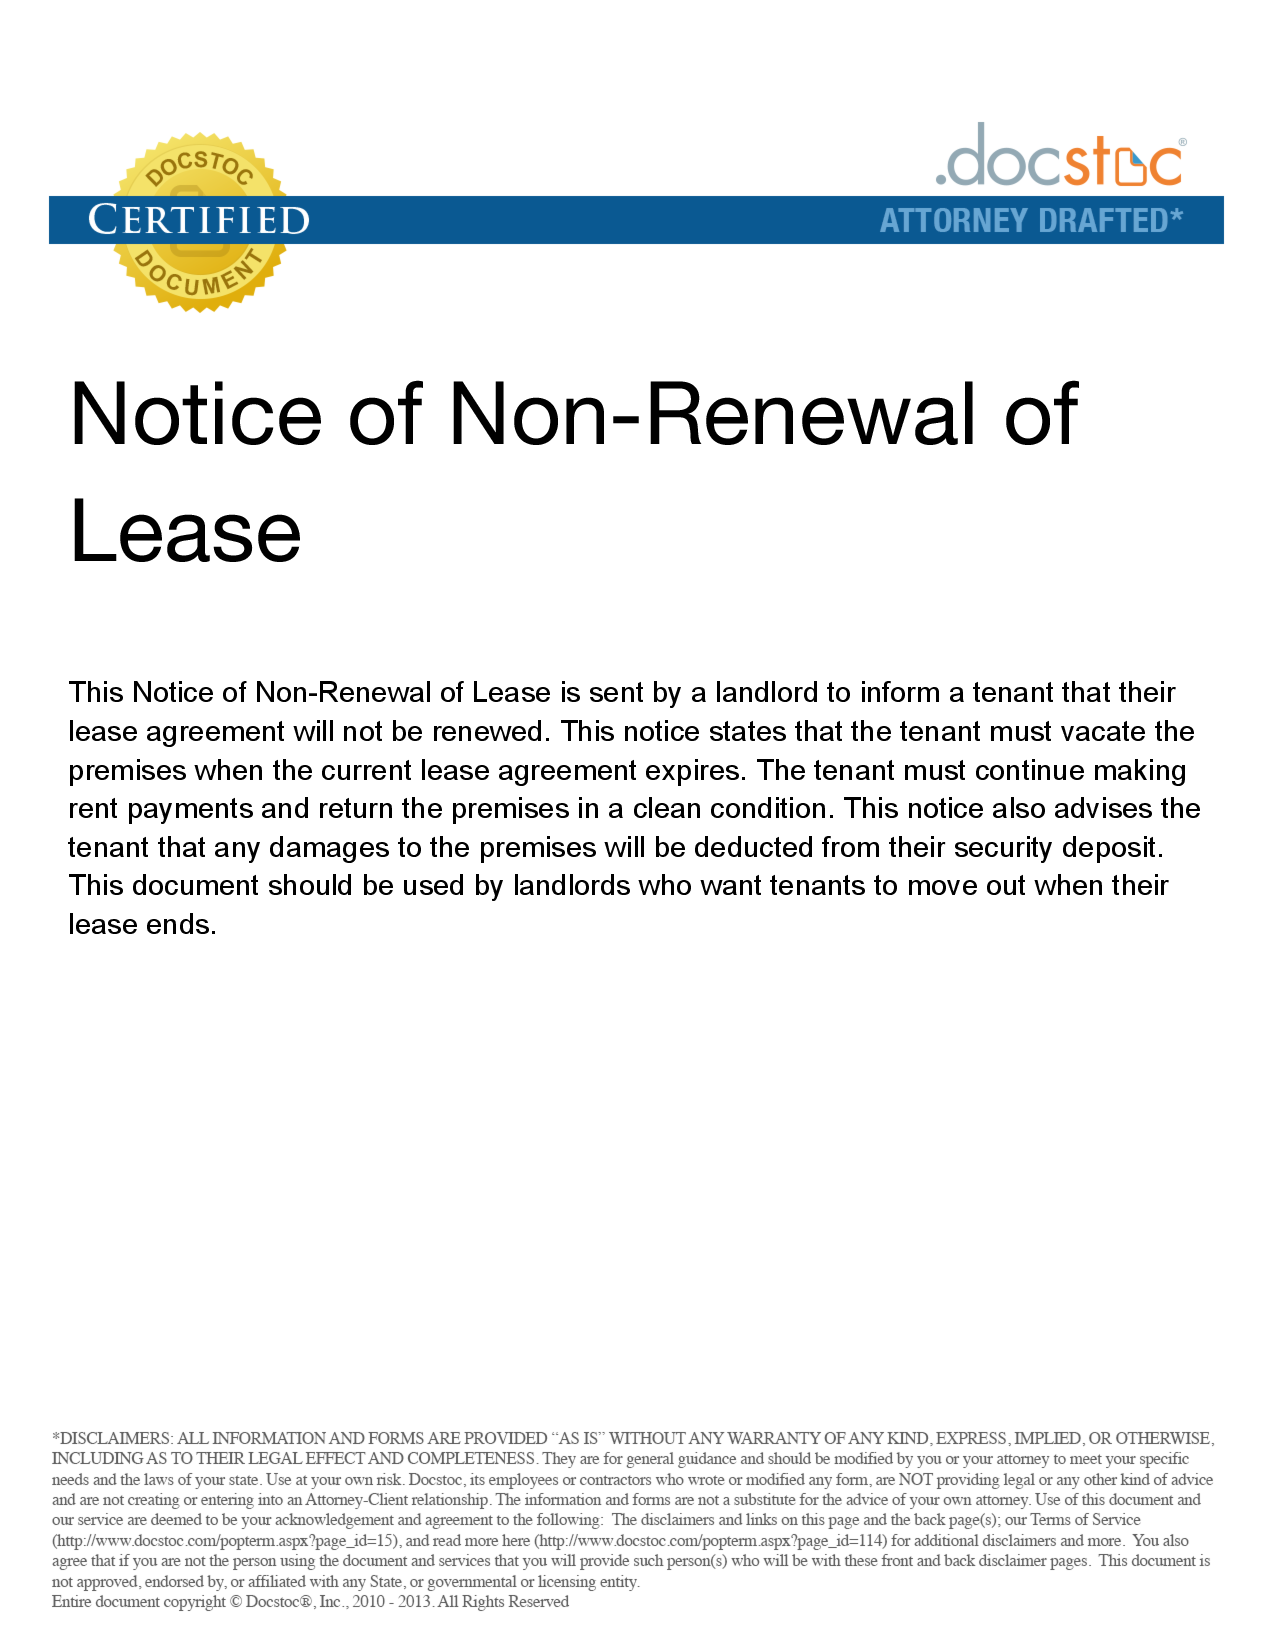 Incroyable Nonrenewal Of Lease Letter   Free Printable Documents